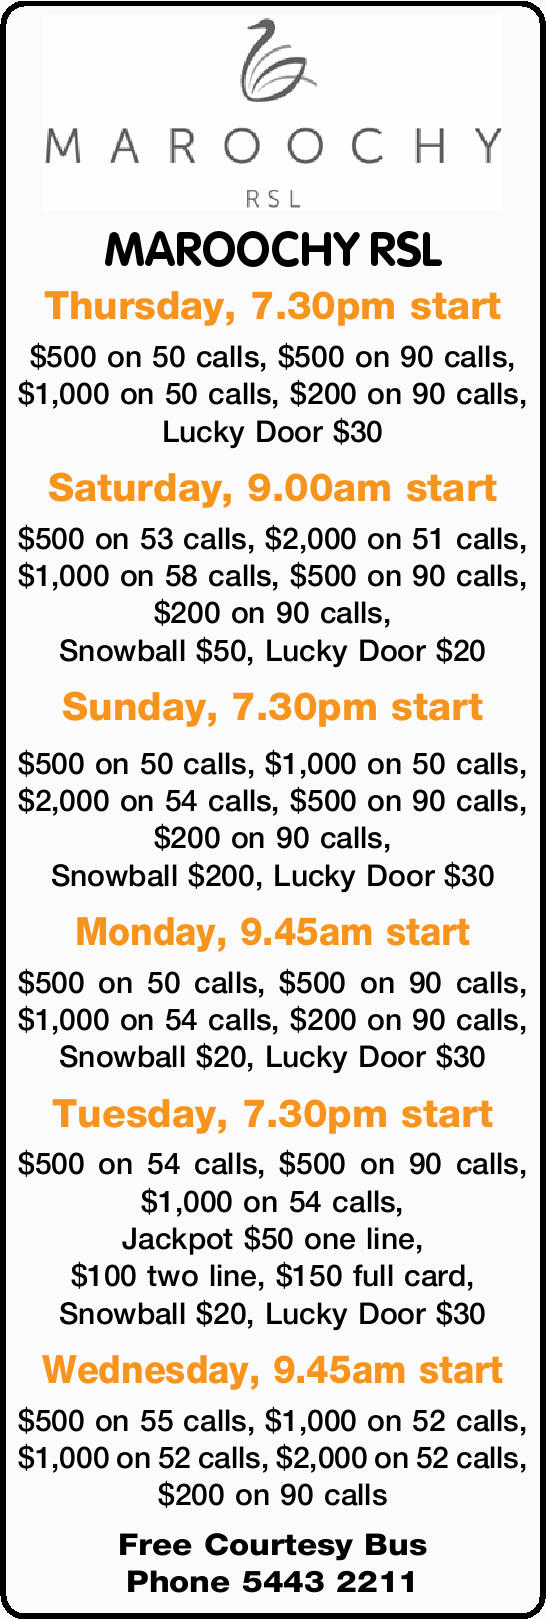 MAROOCHY RSL Thursday, 7.30pm start $500 on 50 calls, $500 on 90 calls, $1,000 on 50 calls, $200...